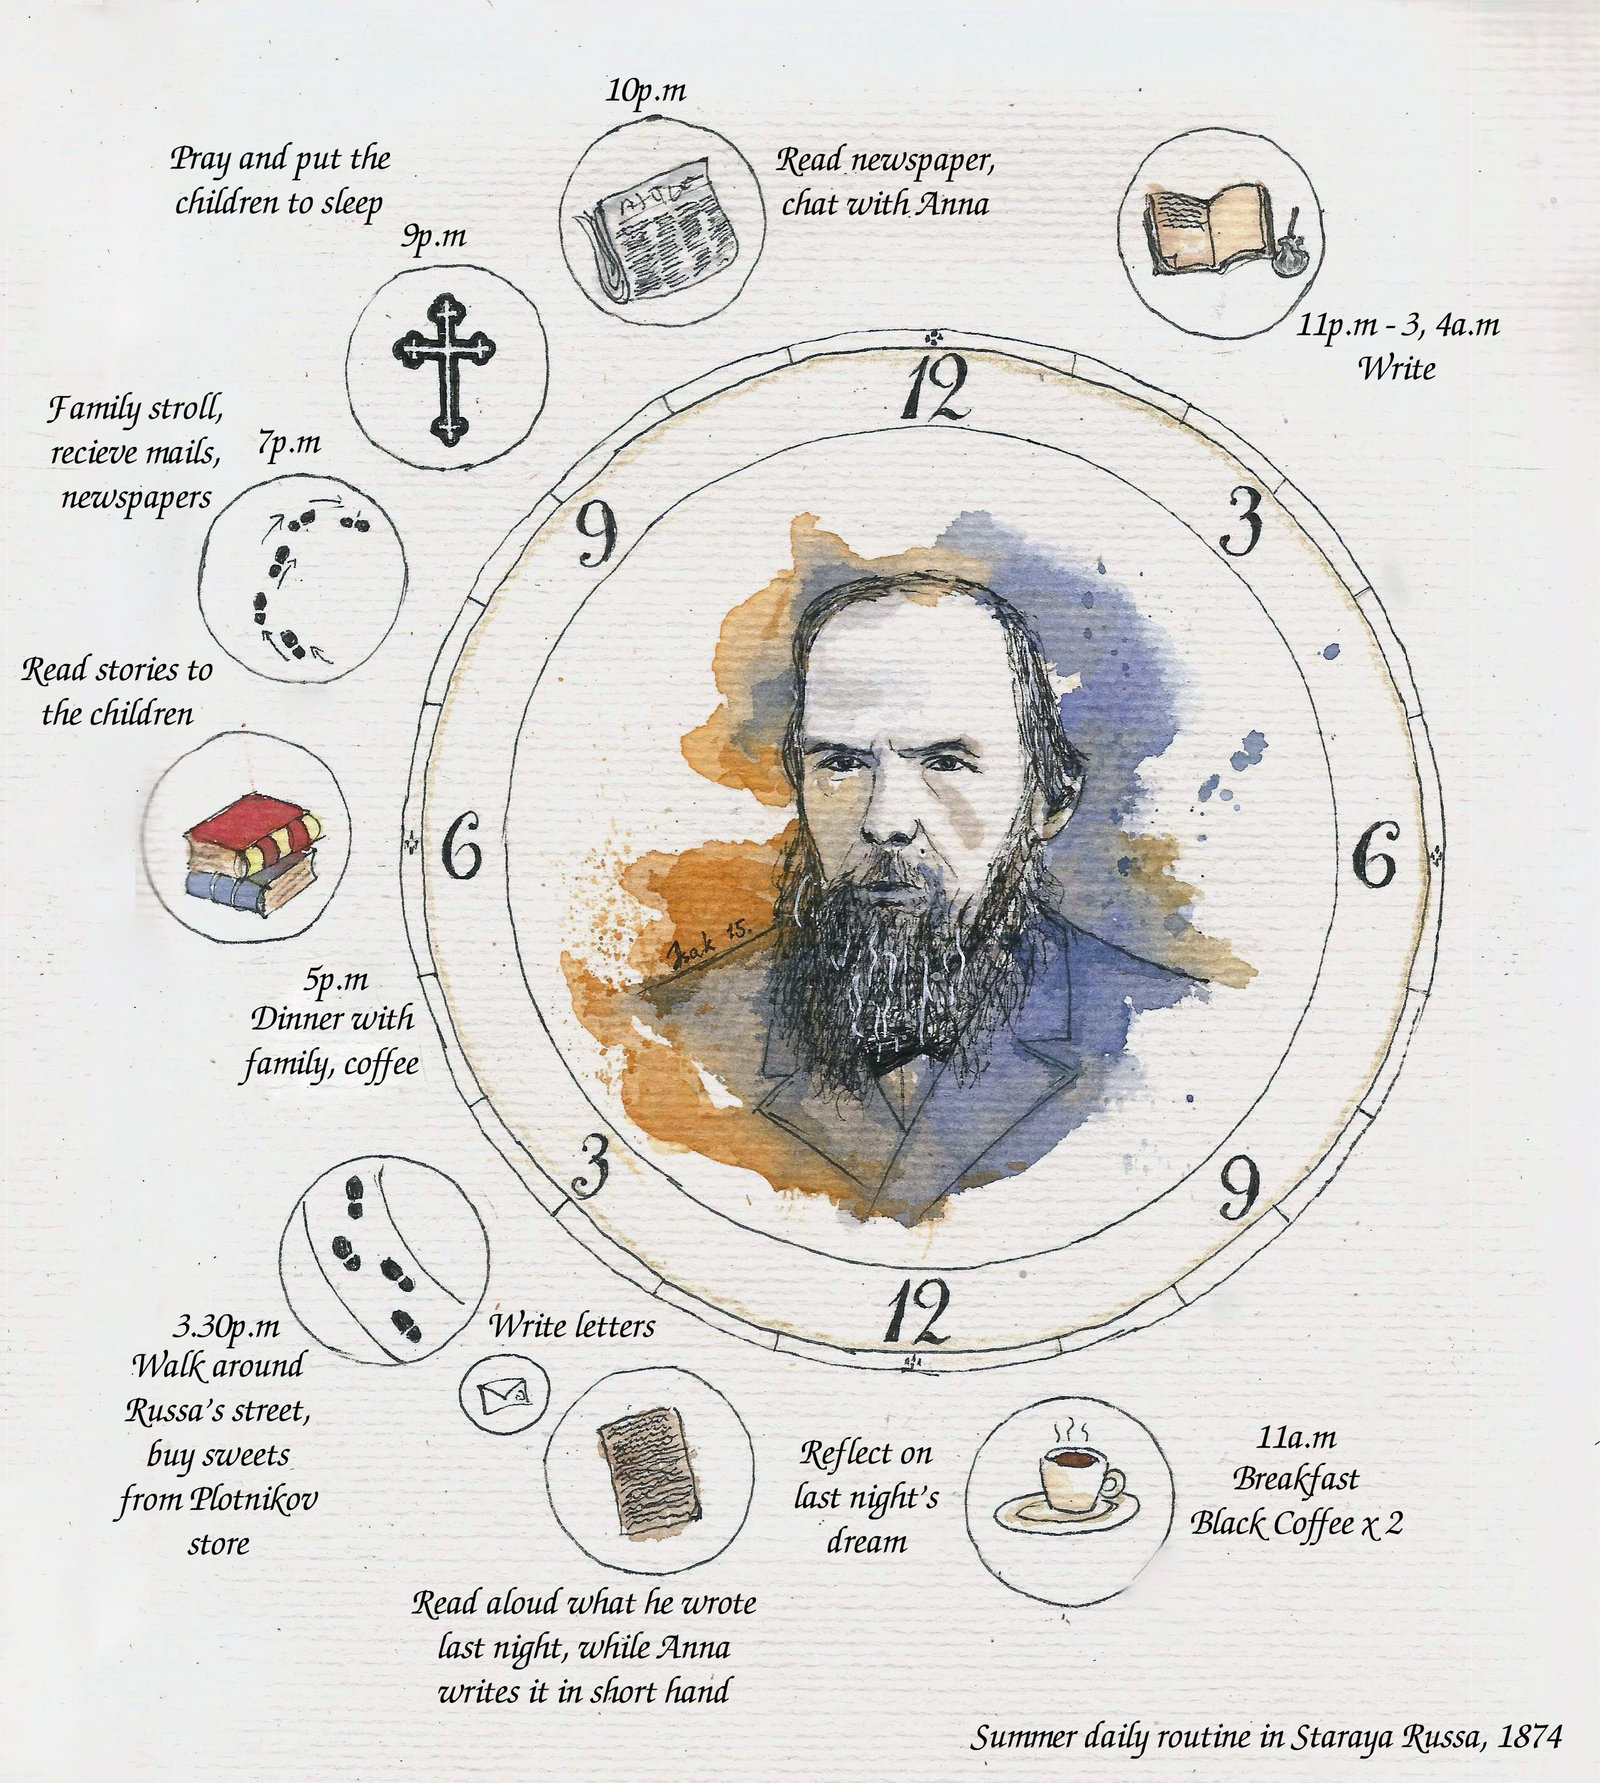 A hari in the life of Dostoevsky